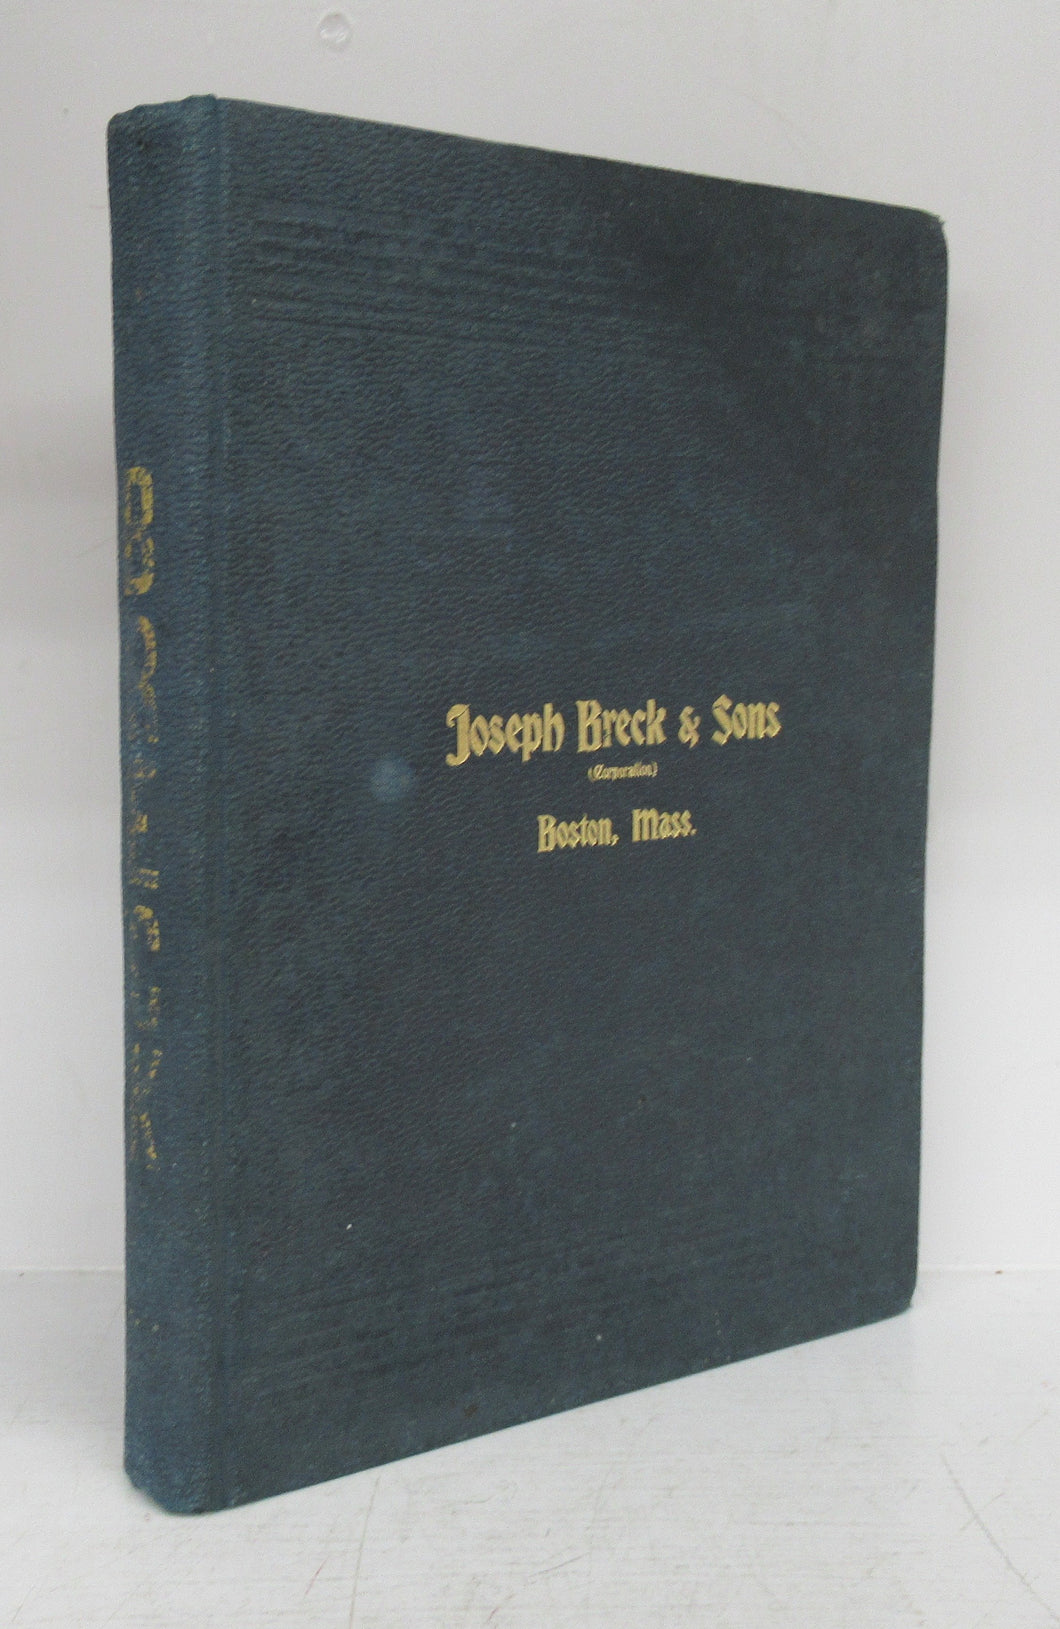 Joseph Breck & Sons trade catalogue